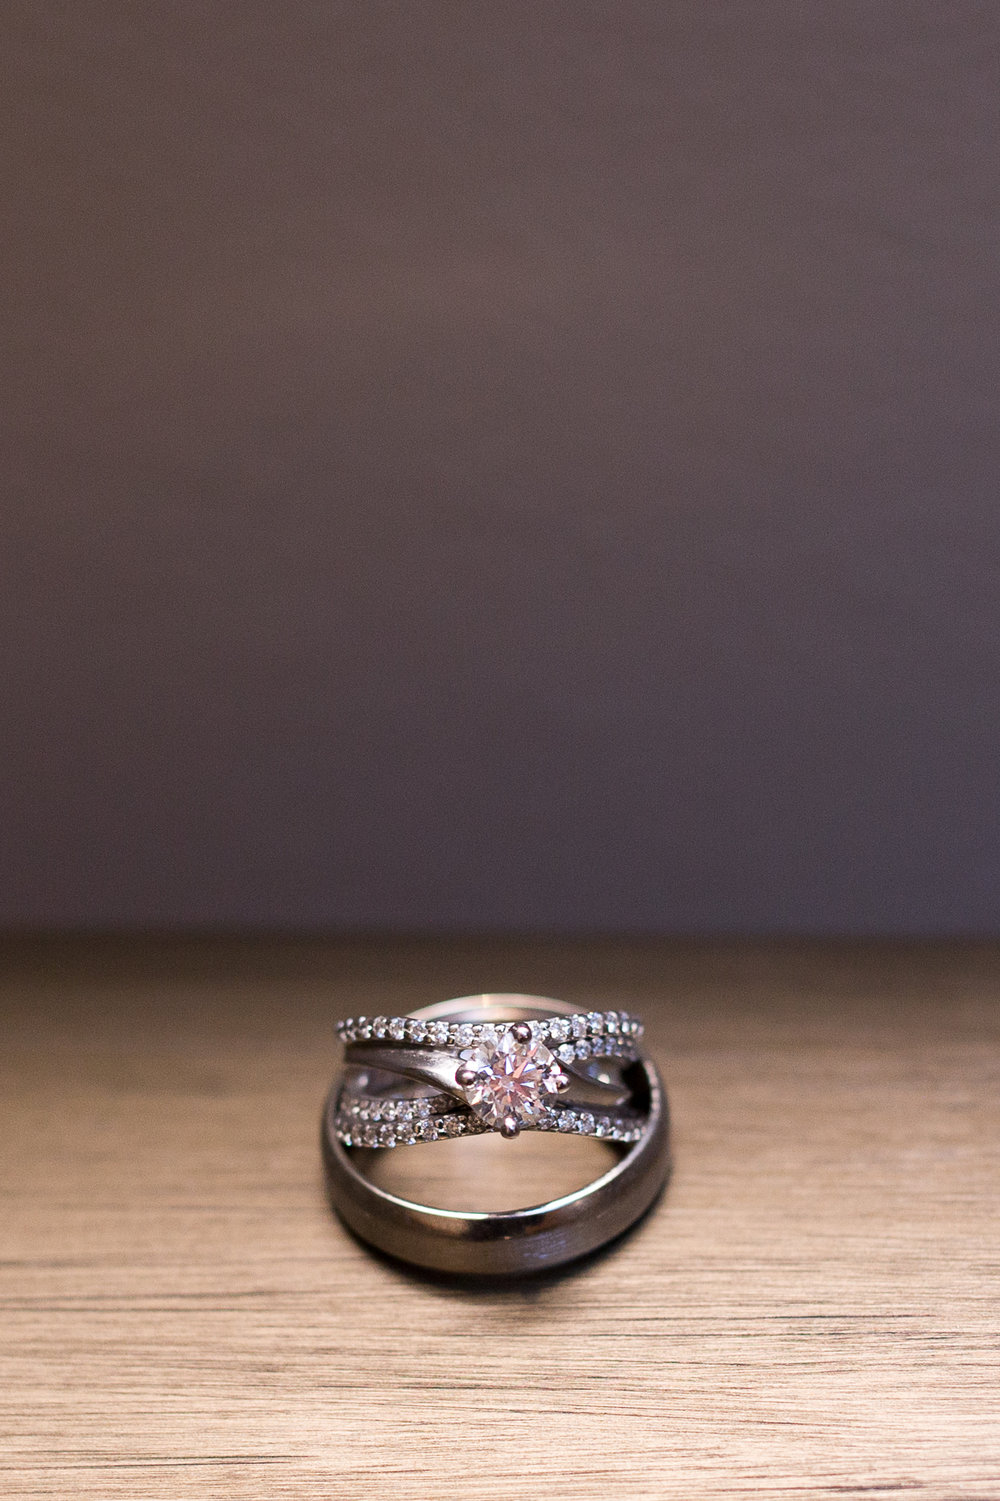 Diamond ring resting in the groom's ring in Colorado  Springs Stacy Carosa Photography